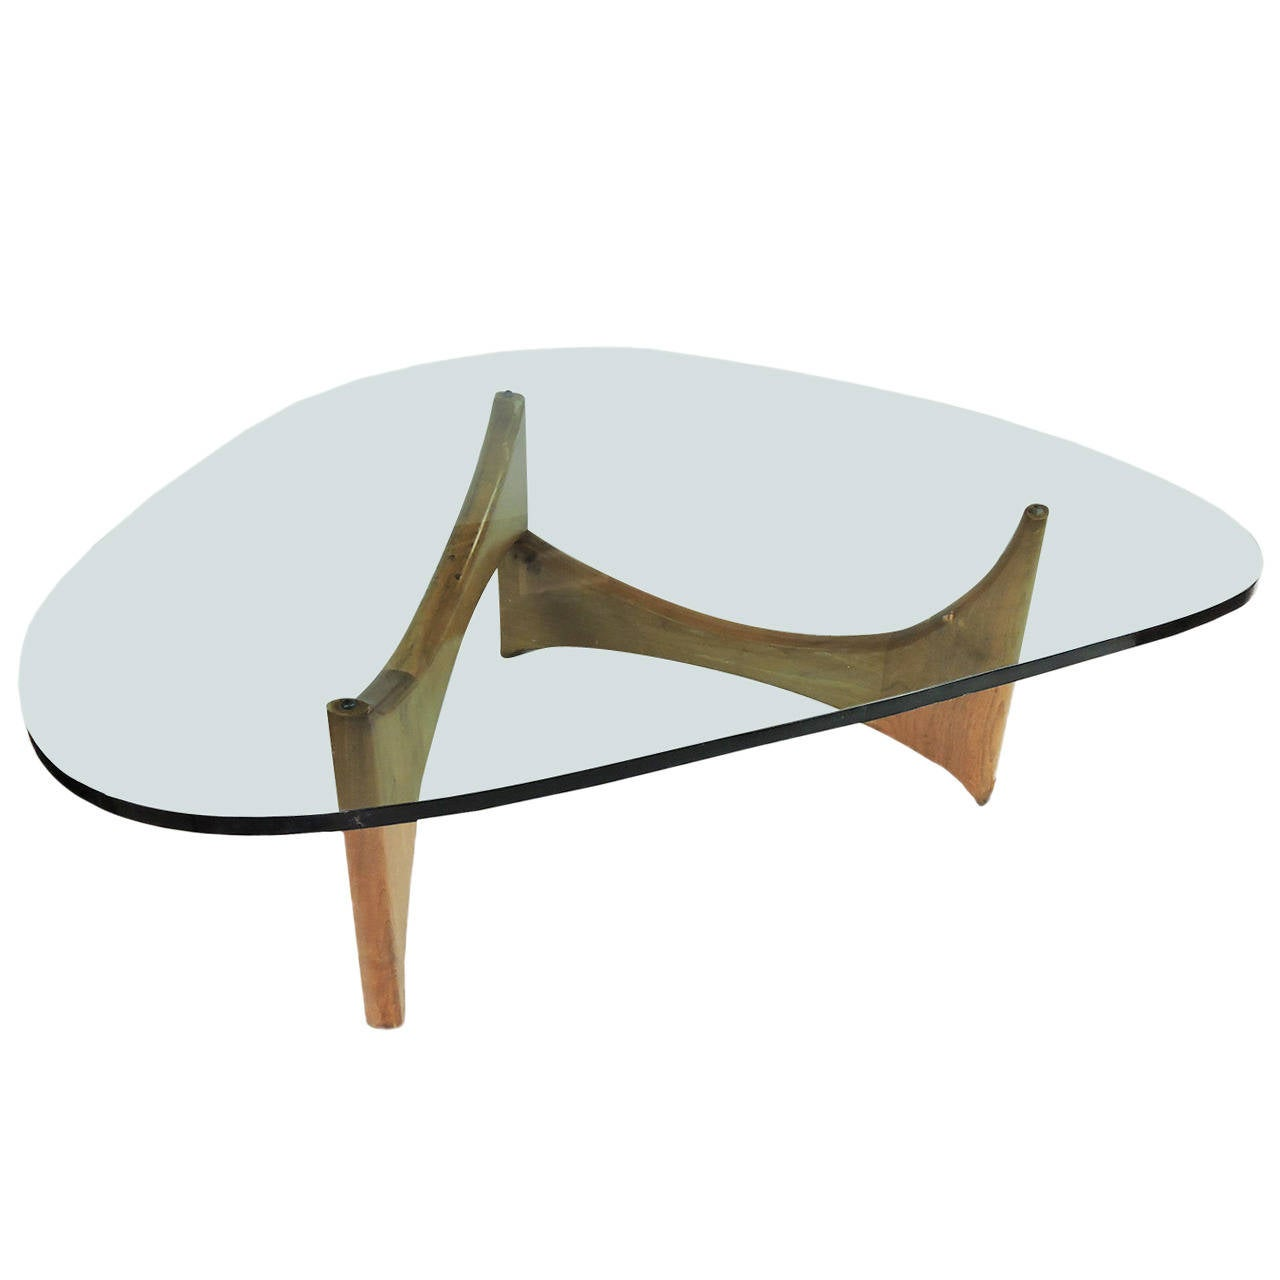 Mid century modern glass and wood coffee table at 1stdibs Designer glass coffee tables